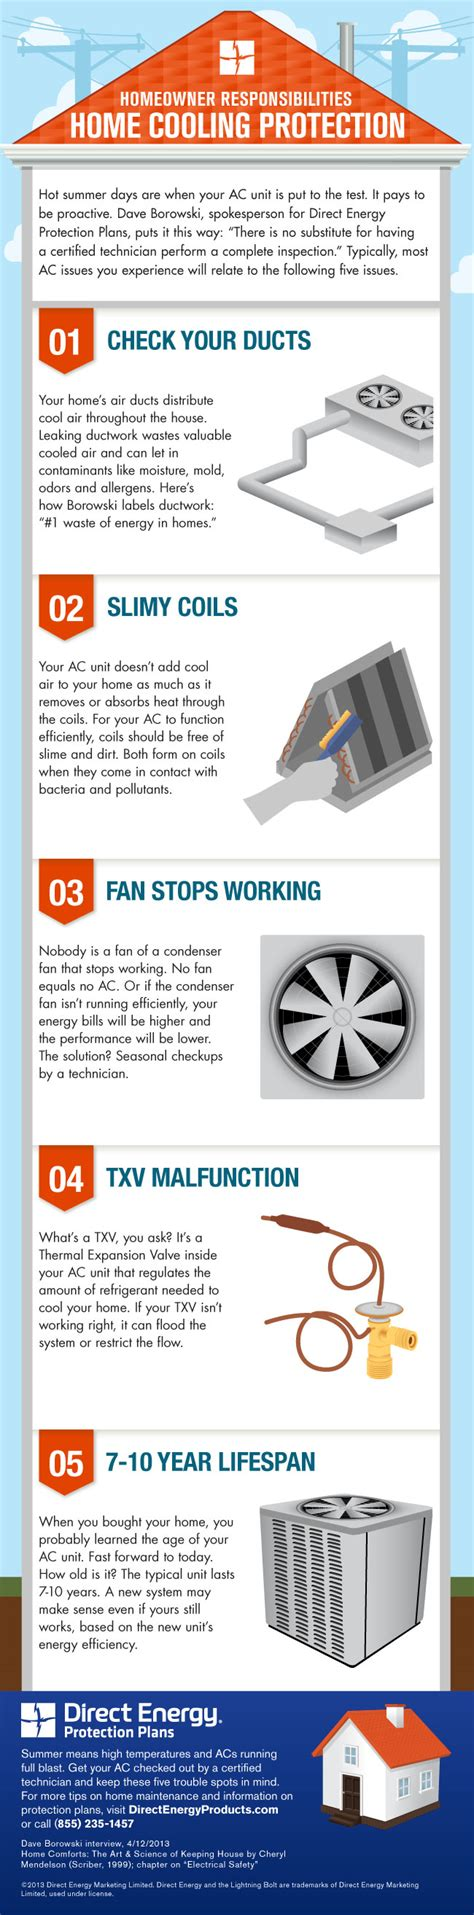 protection plans for furnaces and air conditioners home cooling protection infographic direct energy